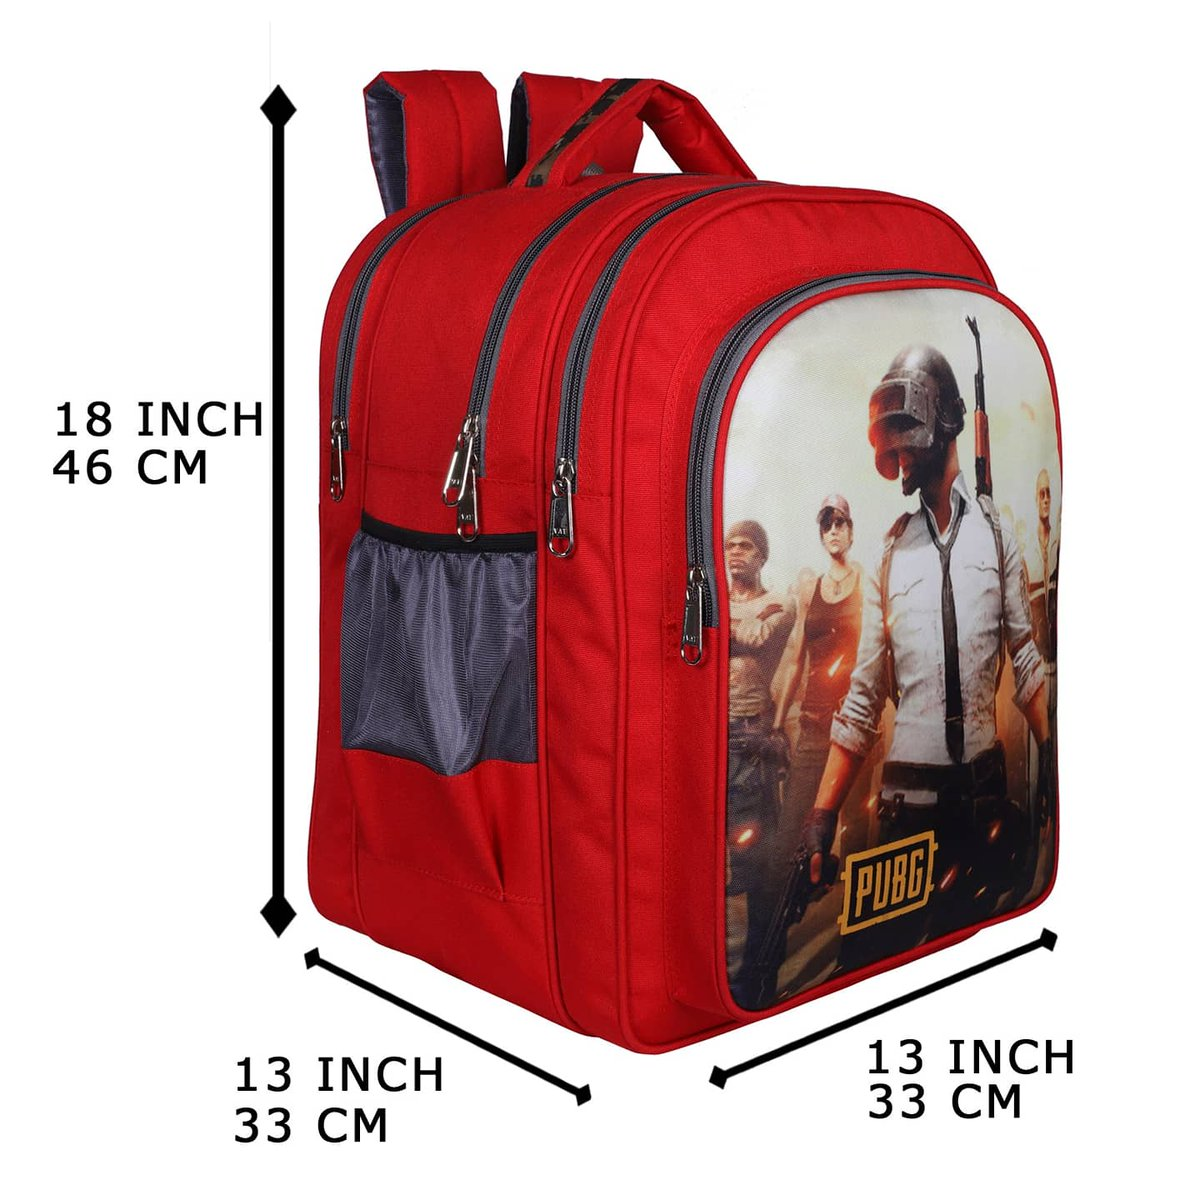 🎒SMS BAG HOUSE PUBG Waterproof School BAG 40 L Laptop Backpack    🔗Buy now on Amazon:   🔗Buy now on Flipkart:   #smsbaghouse #TheBigBillionDays #diwalisale #Amazon  #onlinesale #flipkartipkartbigbilliondays  #pubgbag #collegebags